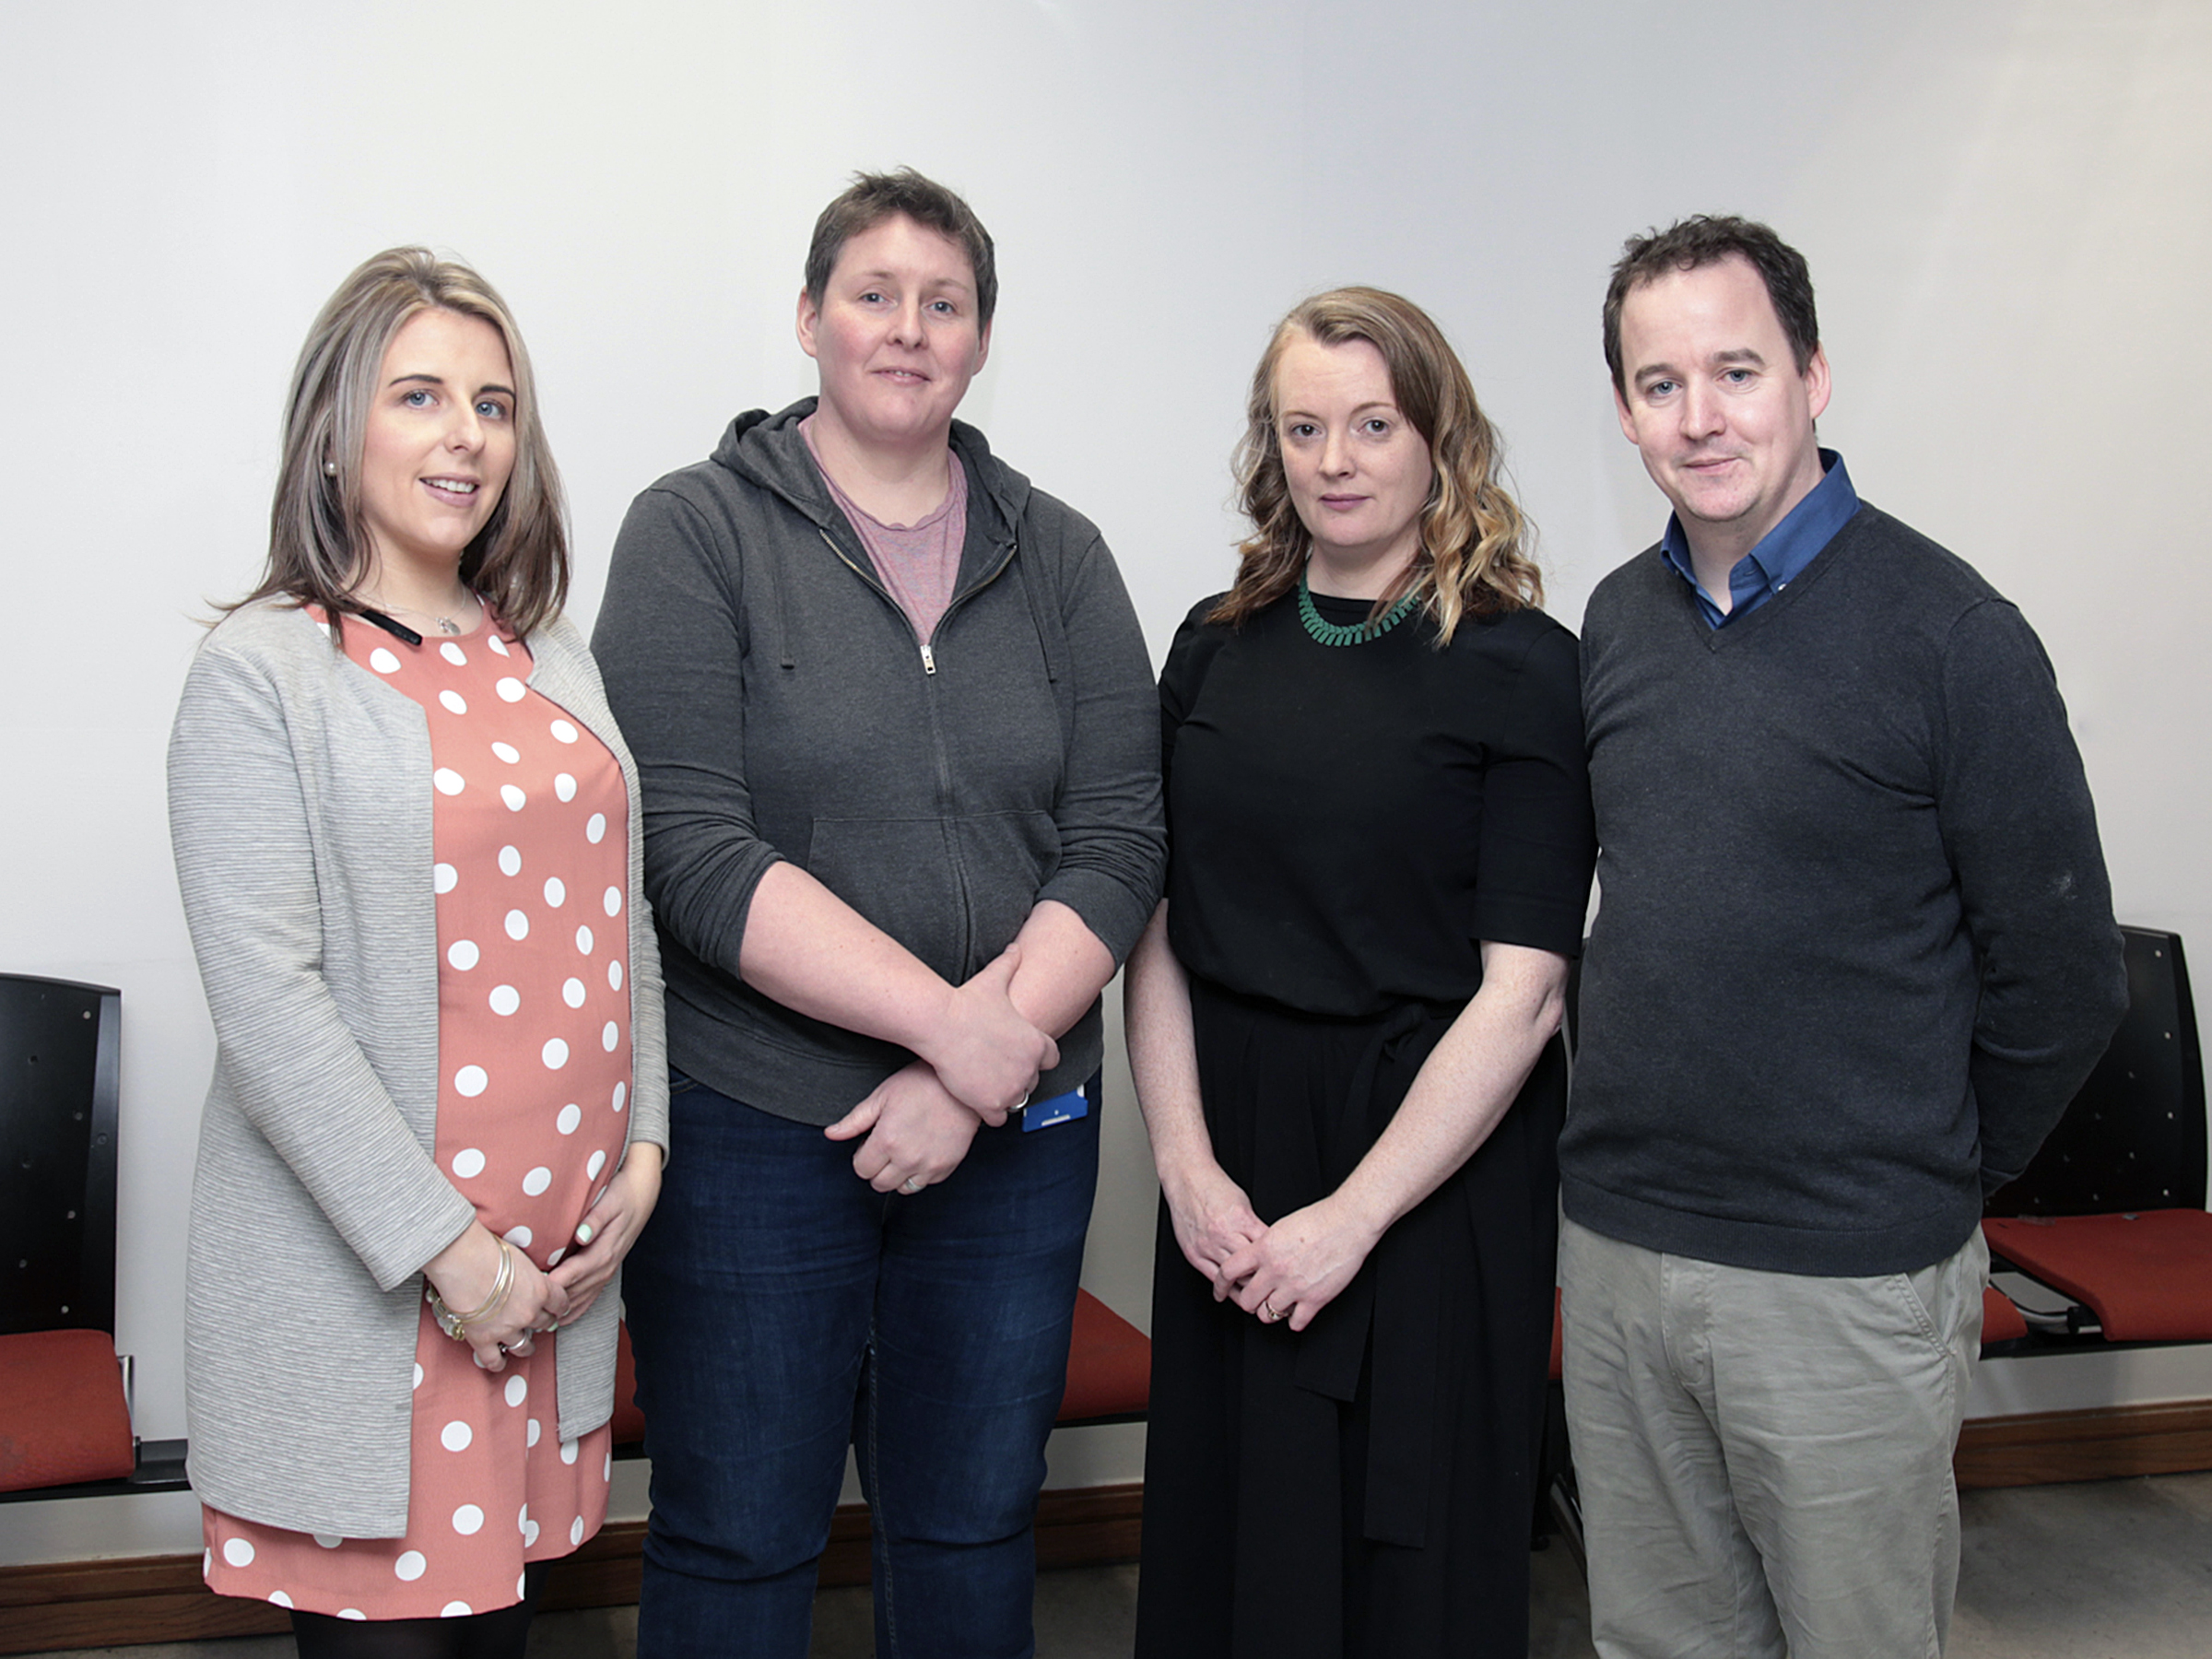 Pictured are: Lauren Traynor (Executive Project Director of the Waterford Viking Triangle), Dr Cara Daly, (WIT Lecturer), Dr Susan Connolly (WIT Lecturer), Dr Séamus Dillon (WIT Lecturer)